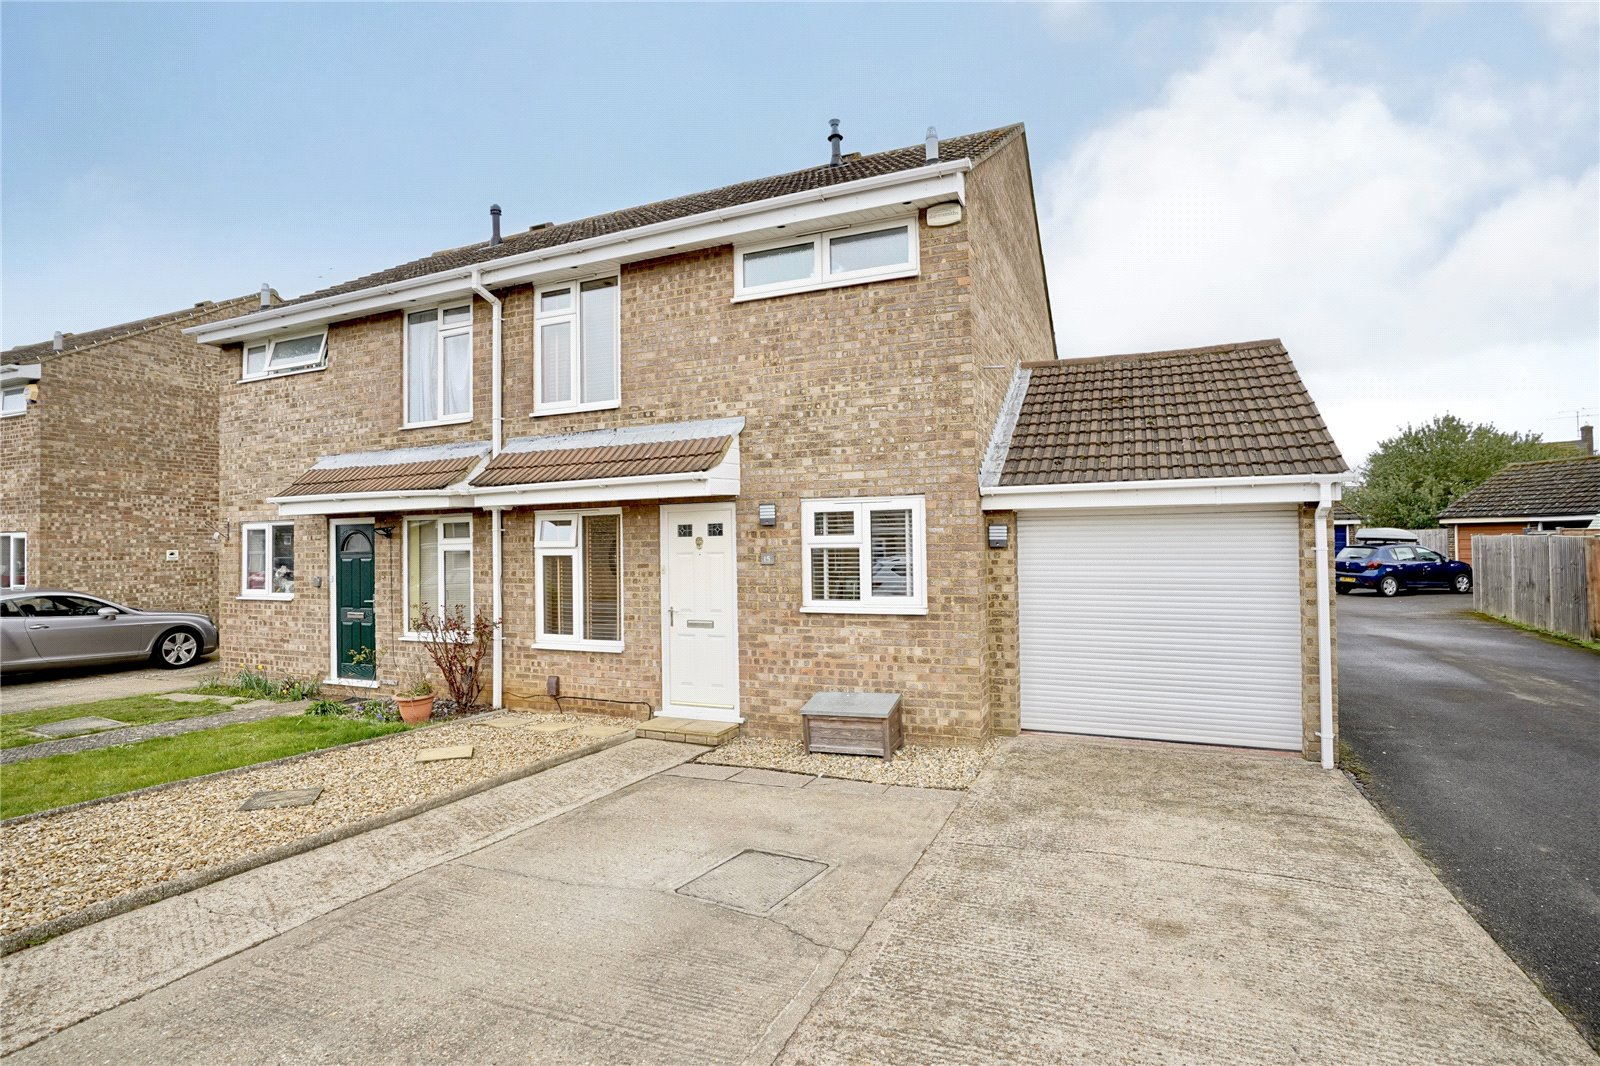 3 bed house for sale in Eaton Ford, PE19 7JL, PE19